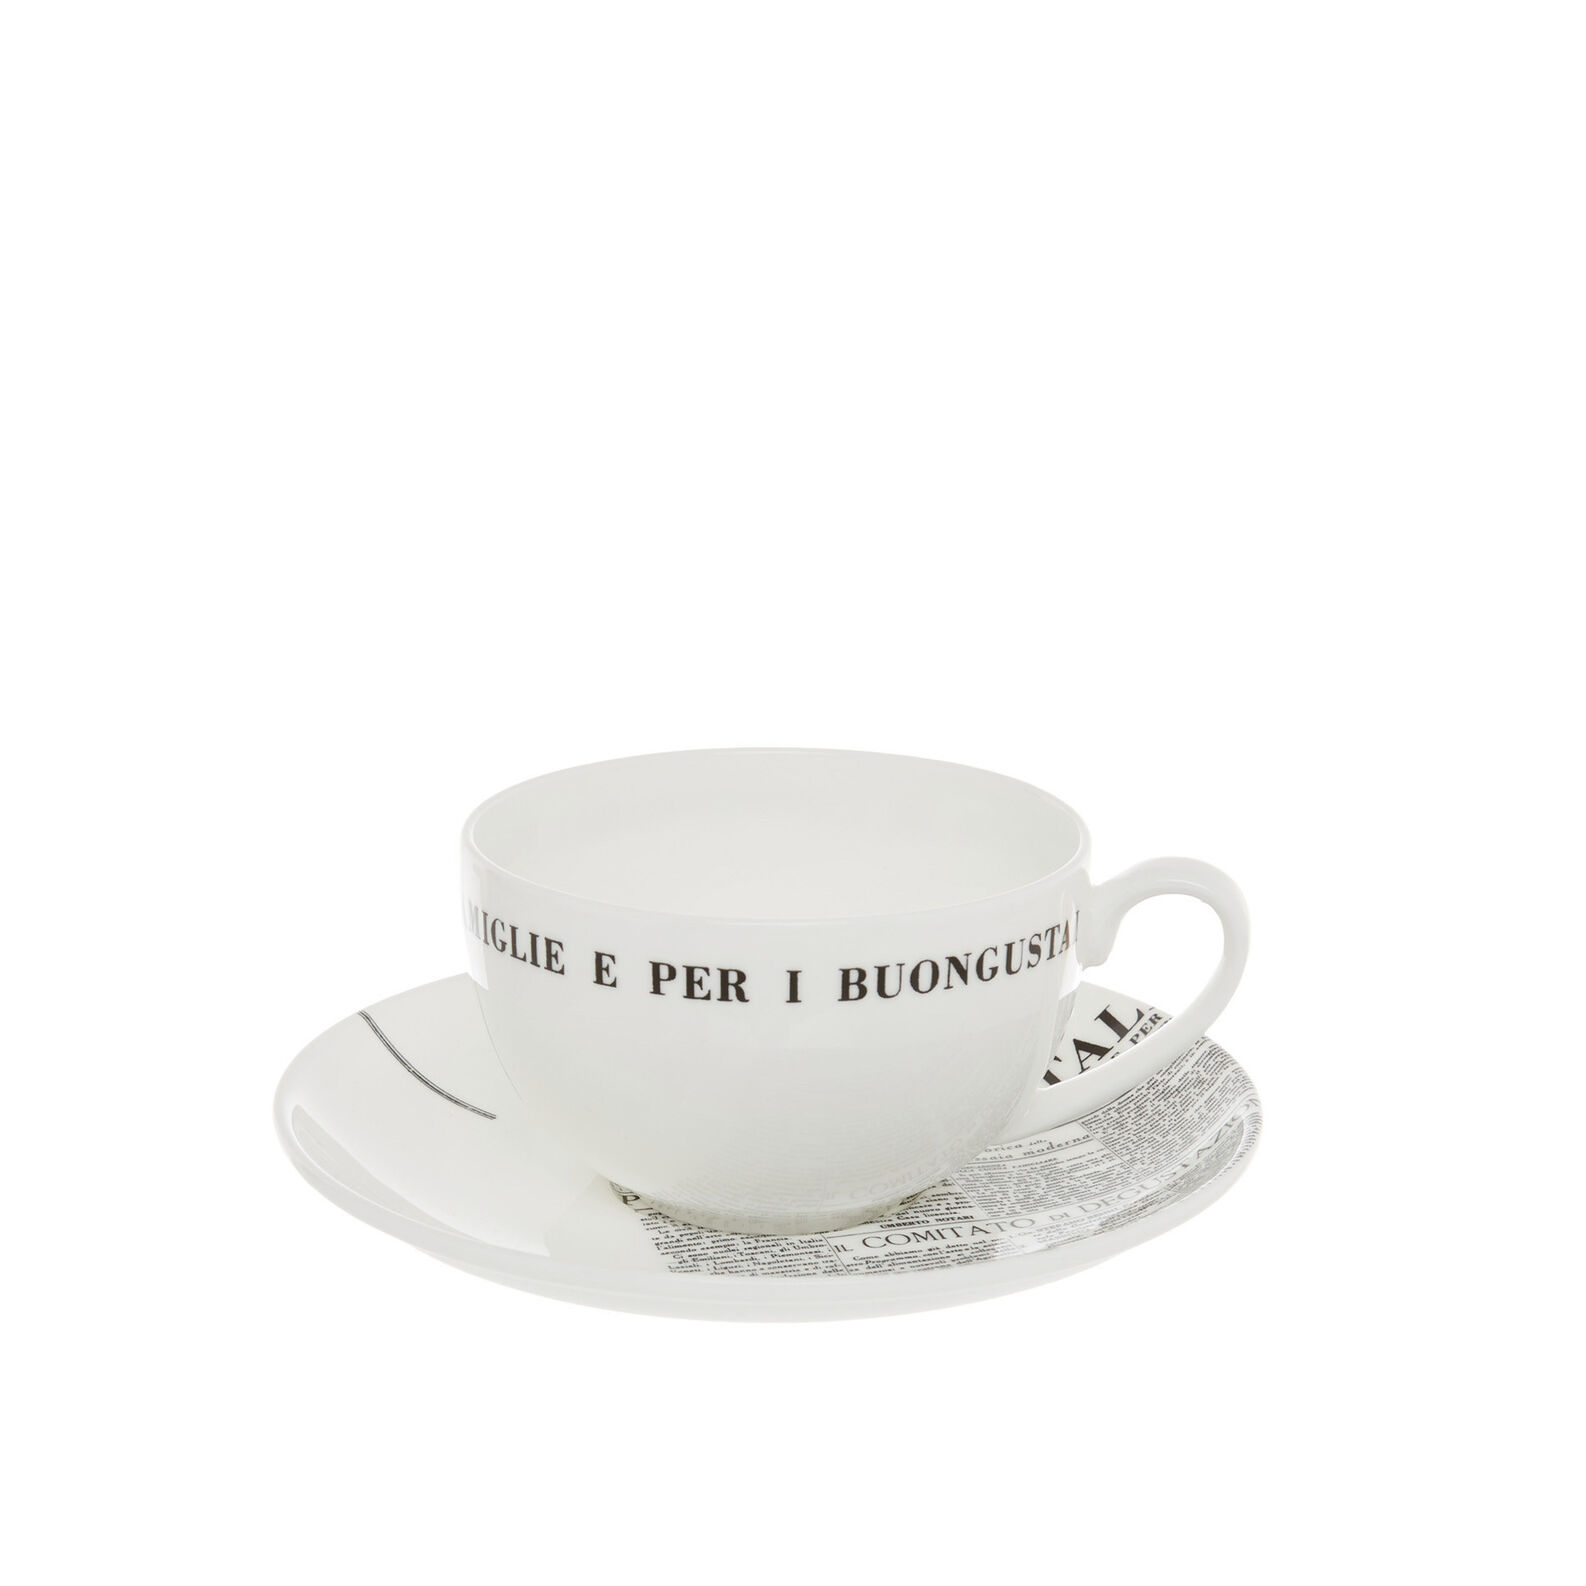 Fine bone china tea cup with geometric La Cucina Italiana decoration